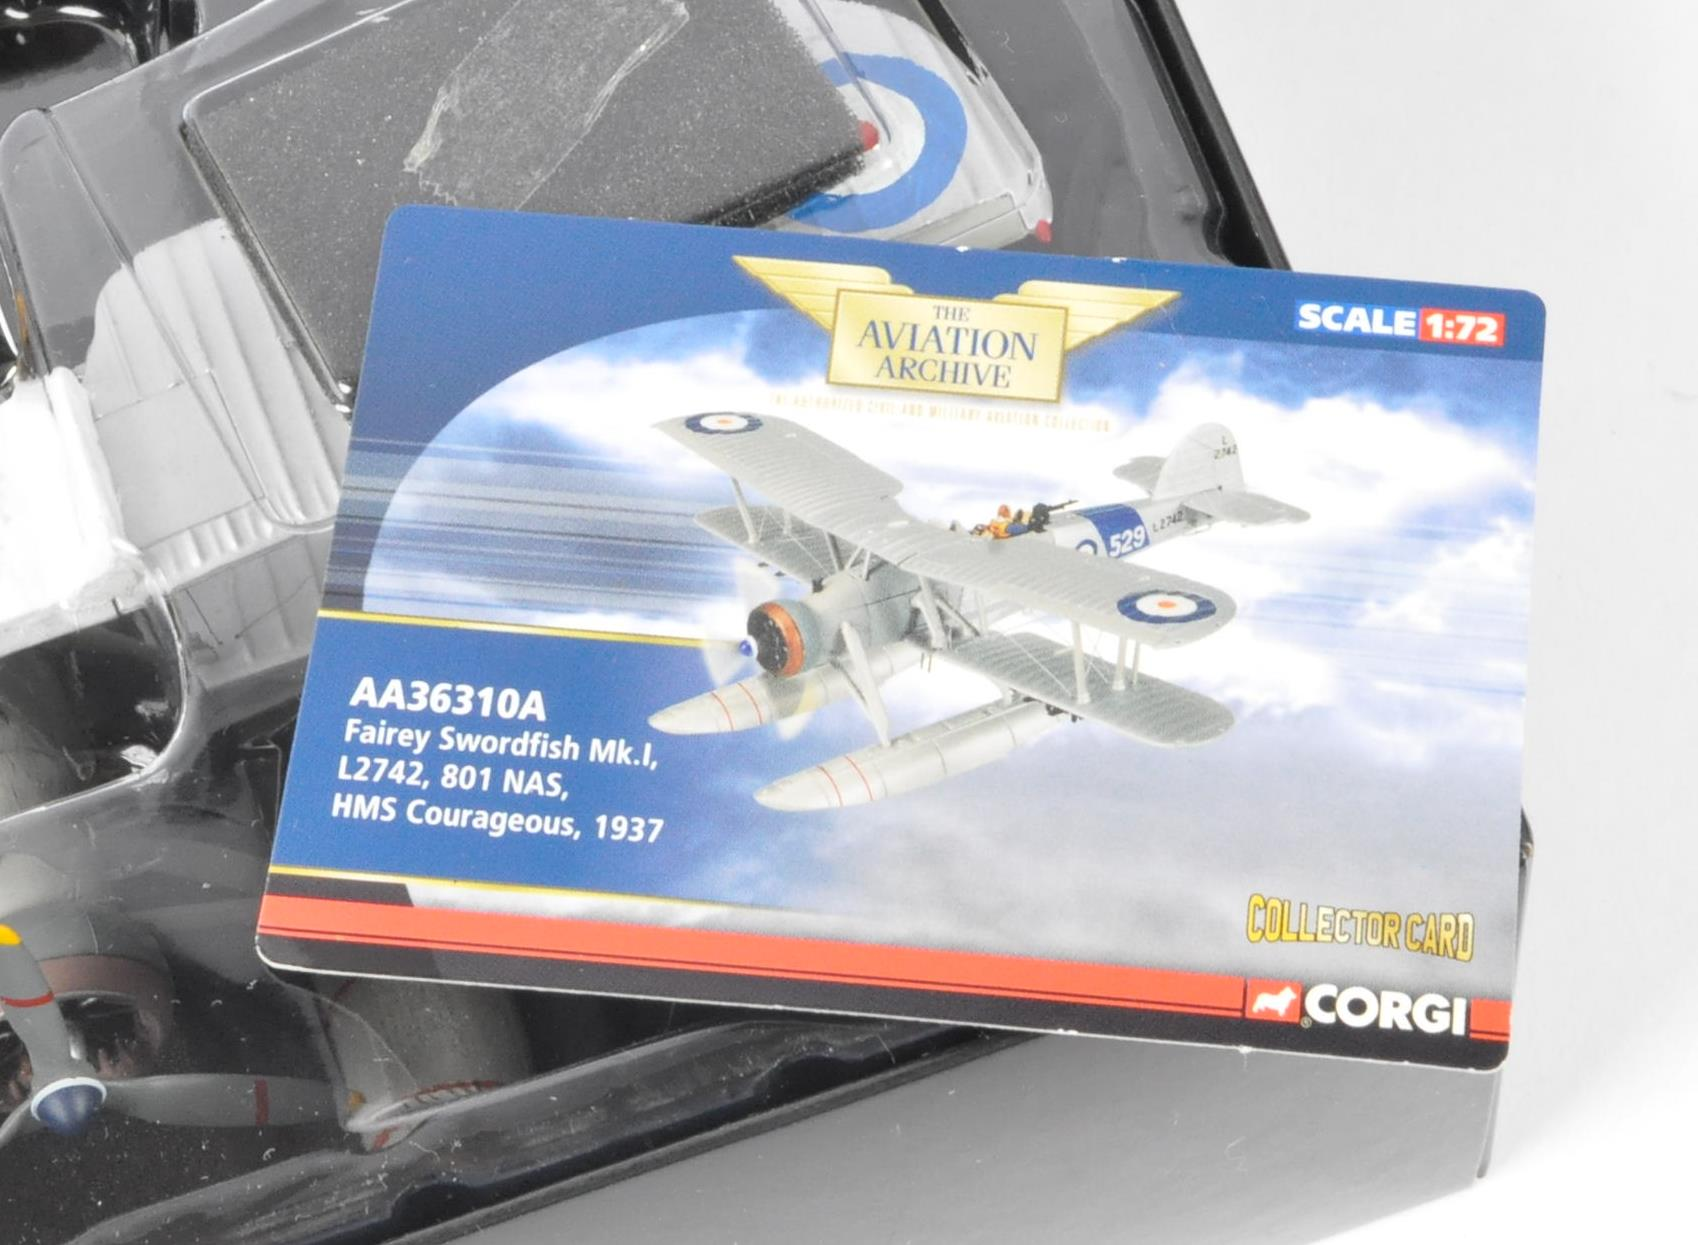 CORGI AVIATION ARCHIVE - AA36310A BOXED DIECAST MODEL PLANE - Image 2 of 4